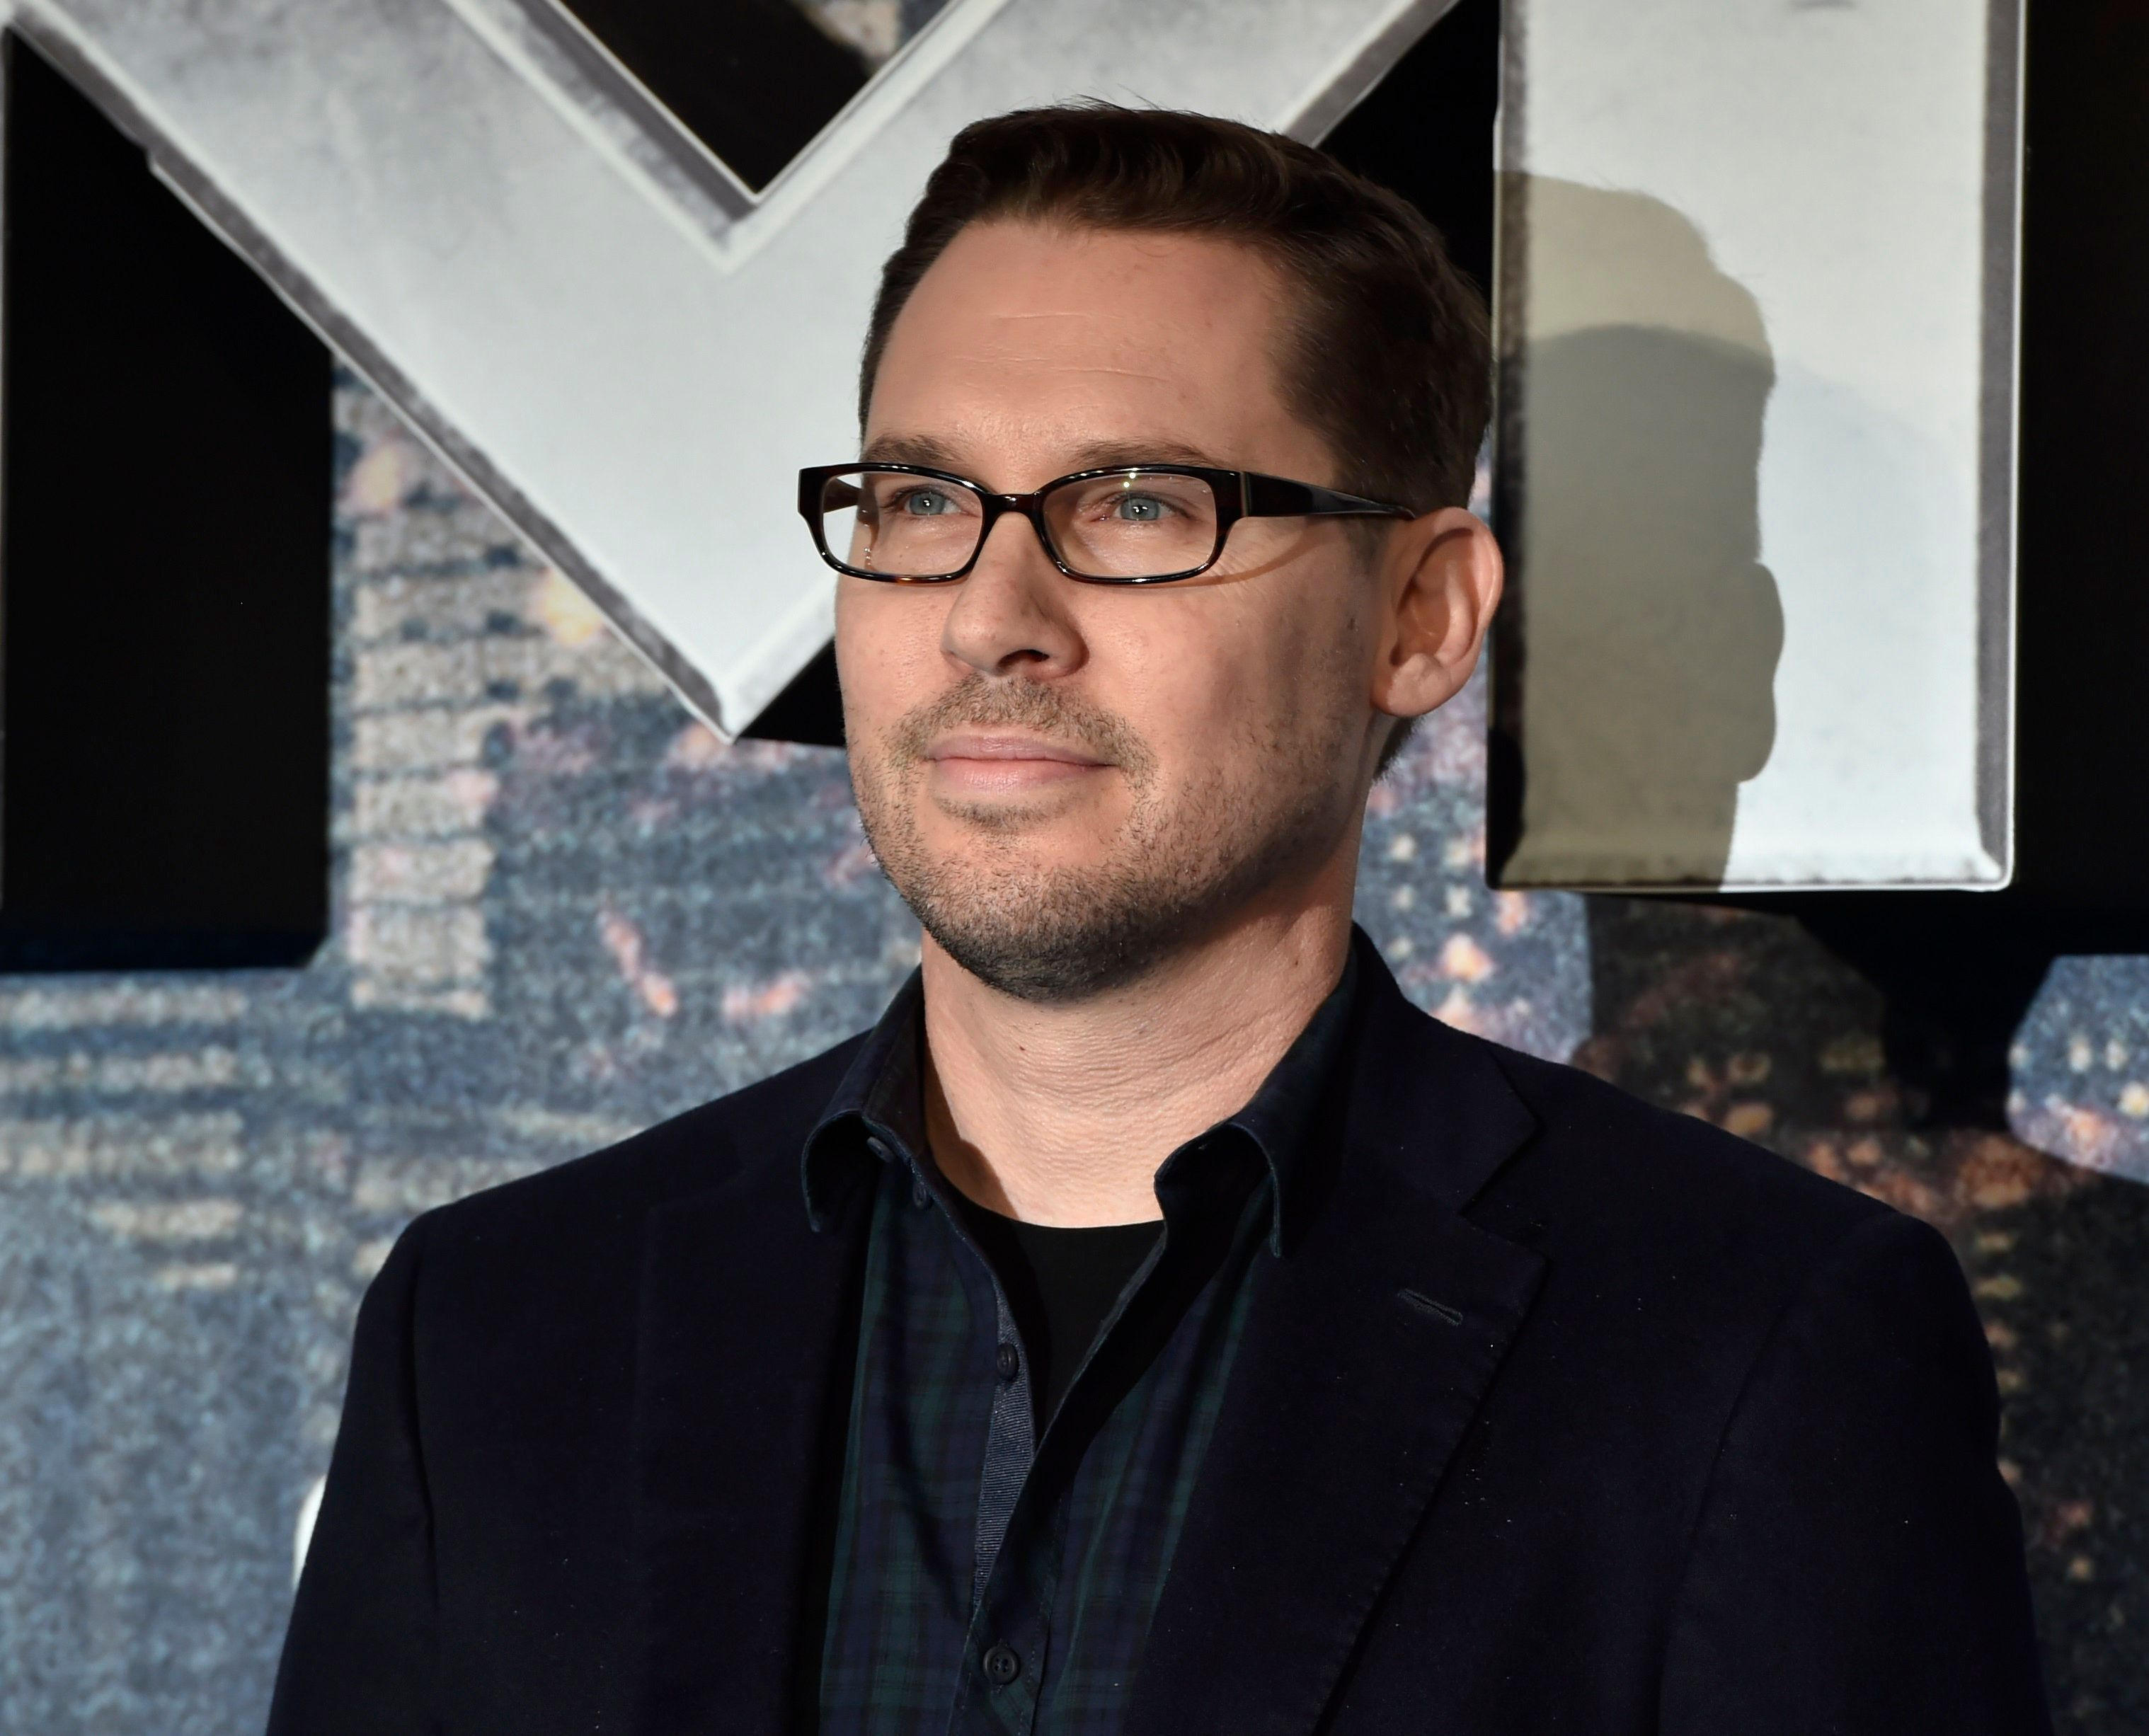 Bryan Singer Faces New Allegations of Sex With Underaged Boys